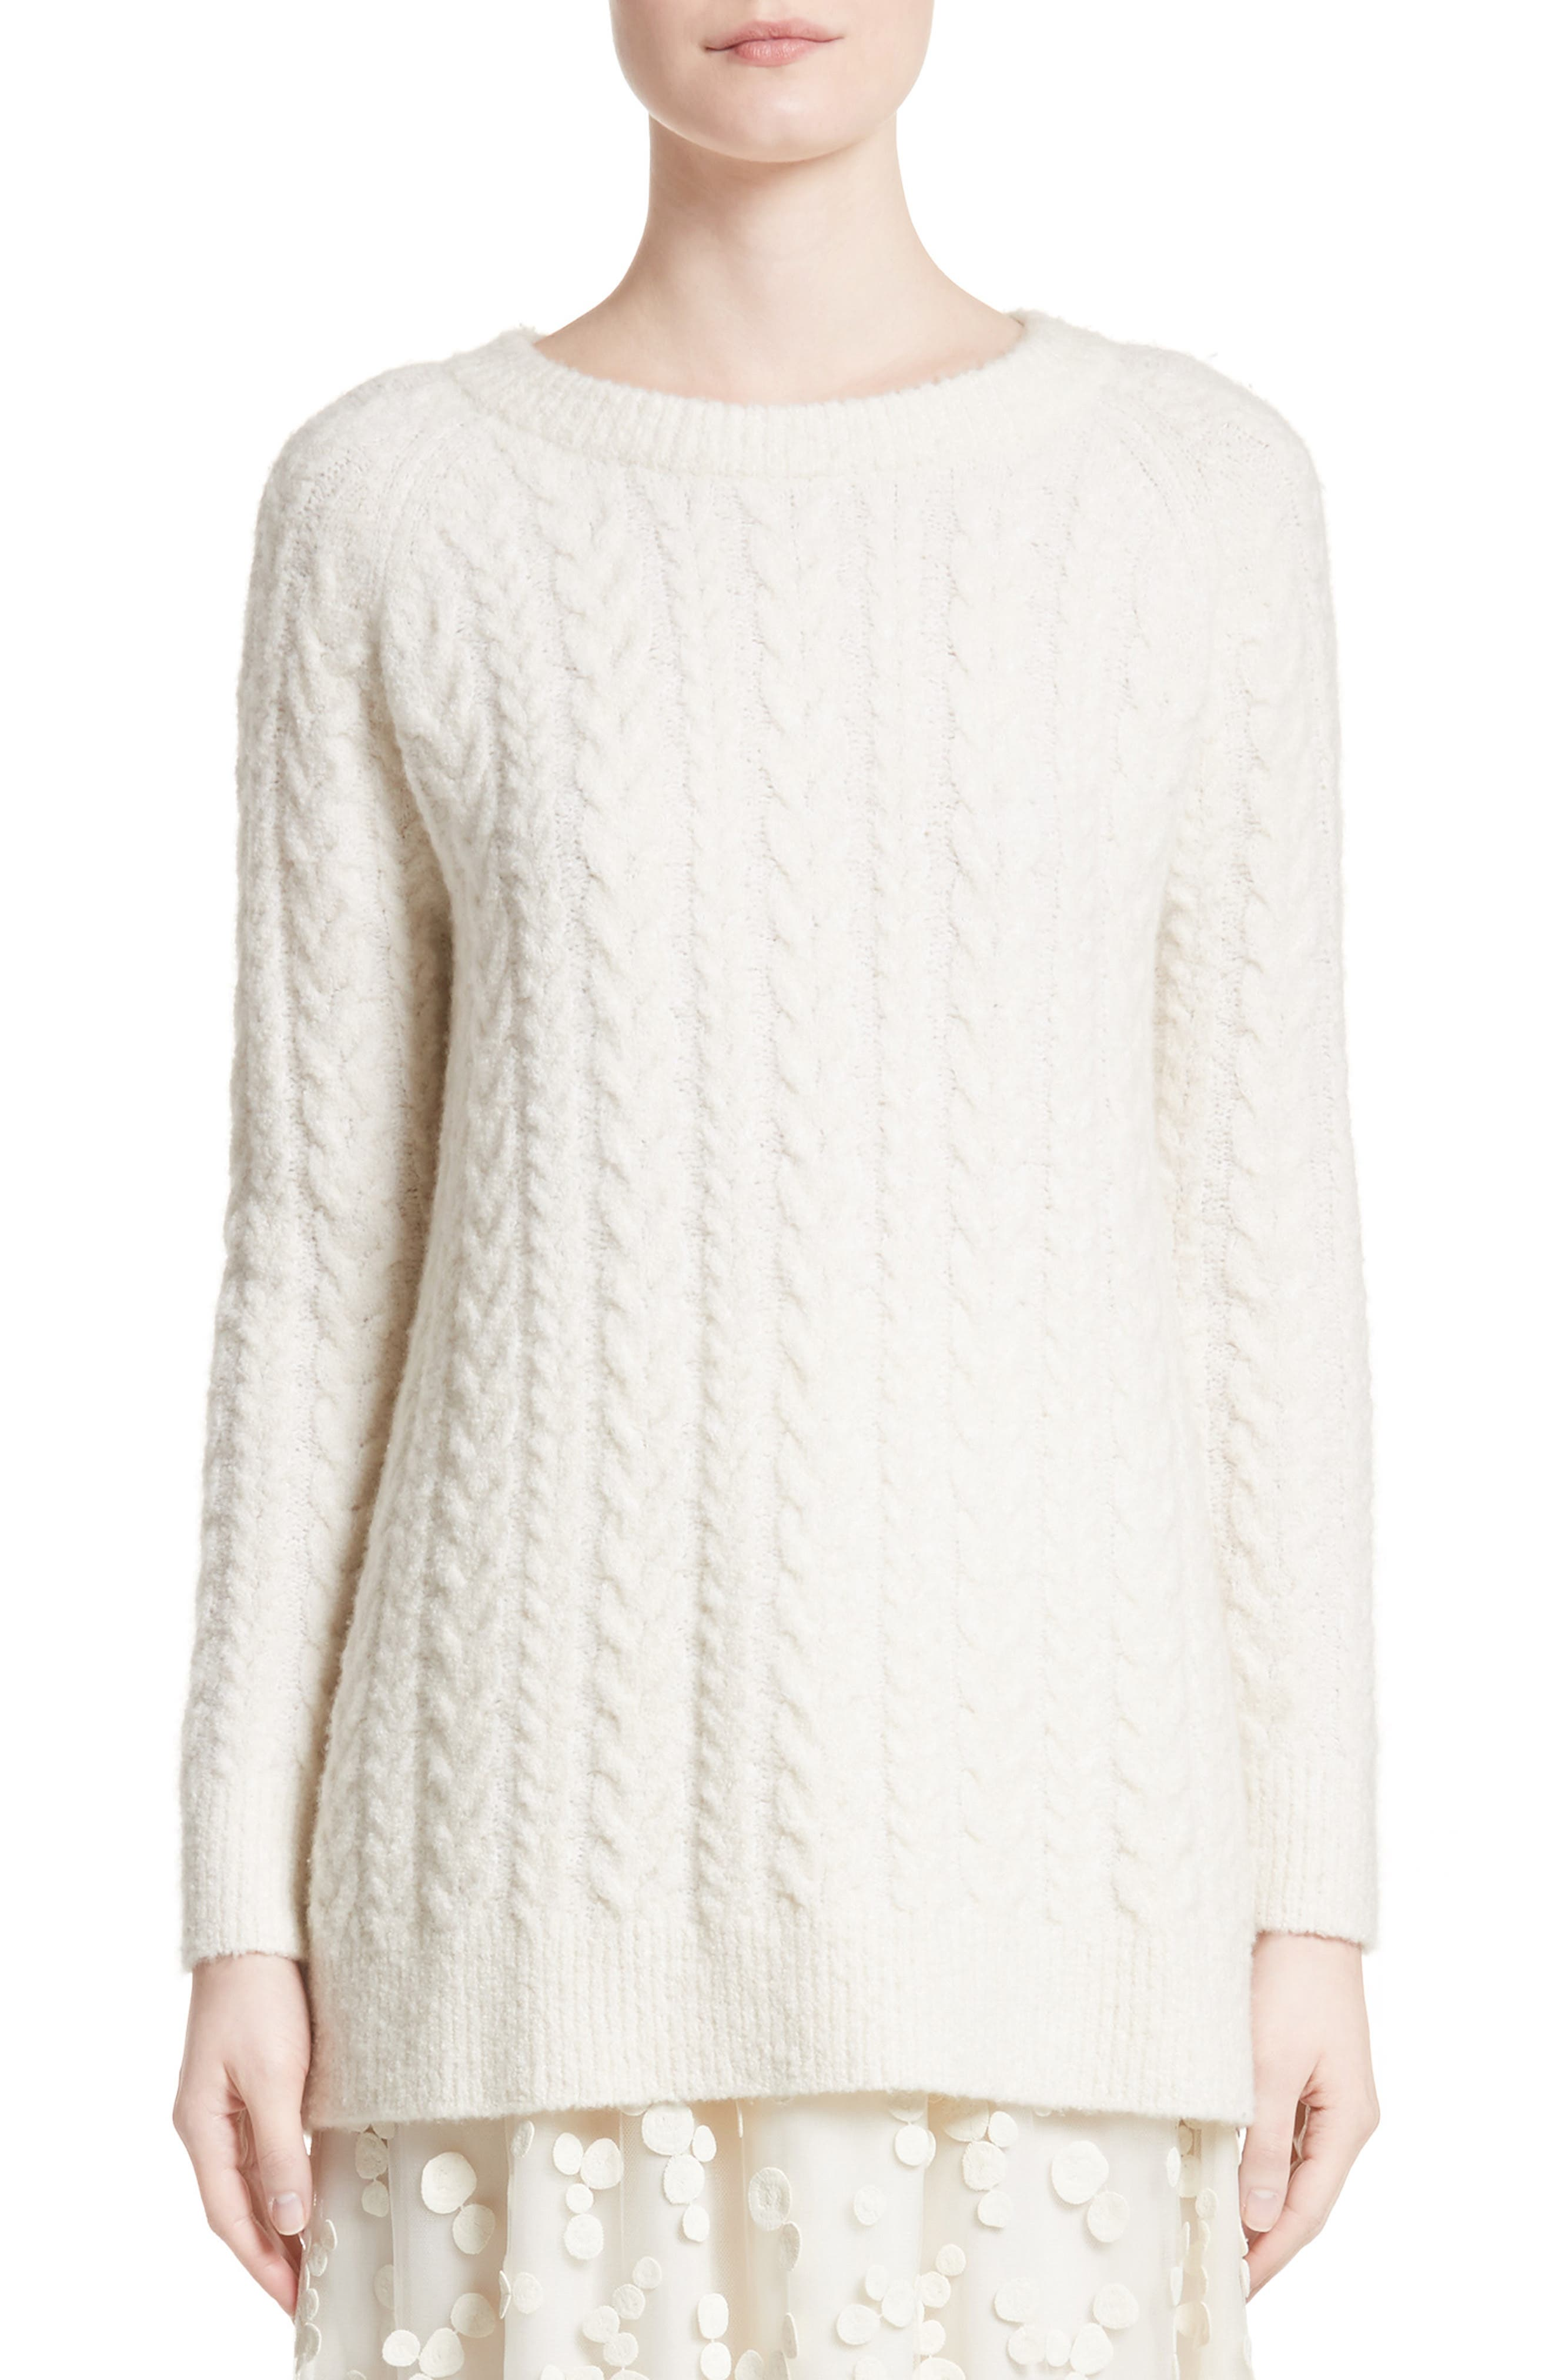 Co Cable Knit Cashmere Blend Sweater